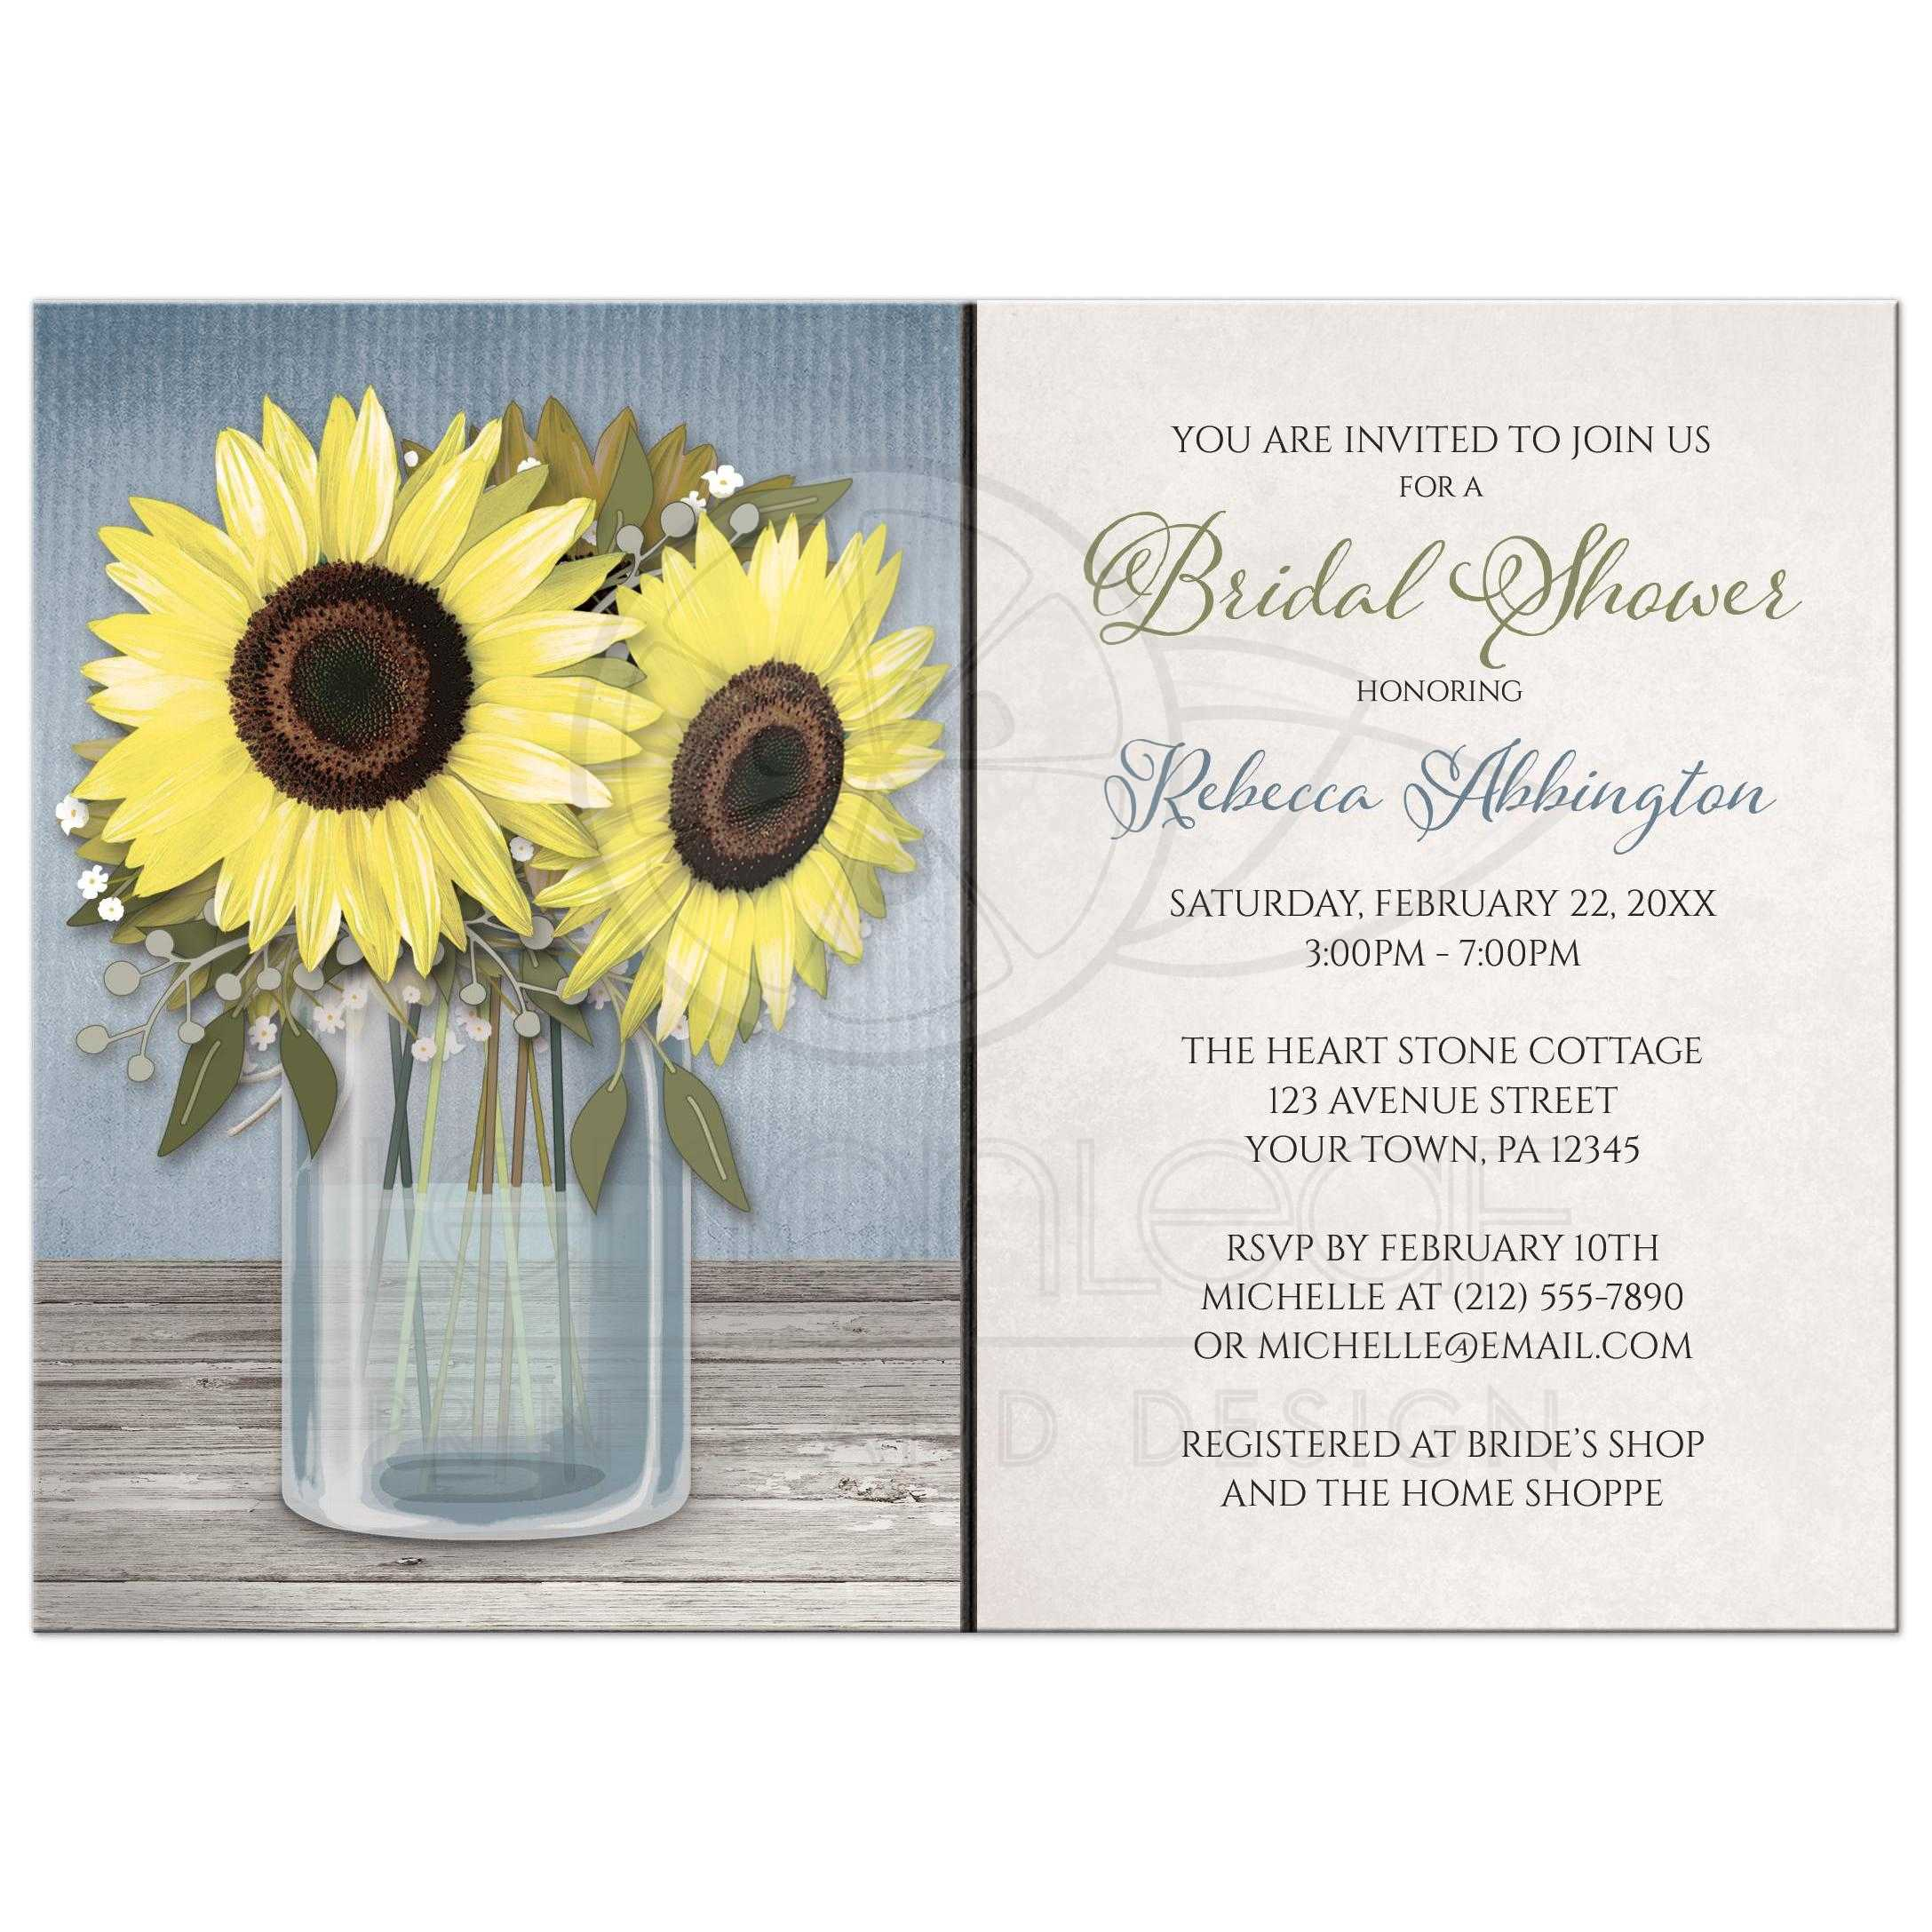 Shower invitations rustic sunflower blue mason jar bridal shower invitations rustic sunflower blue mason jar filmwisefo